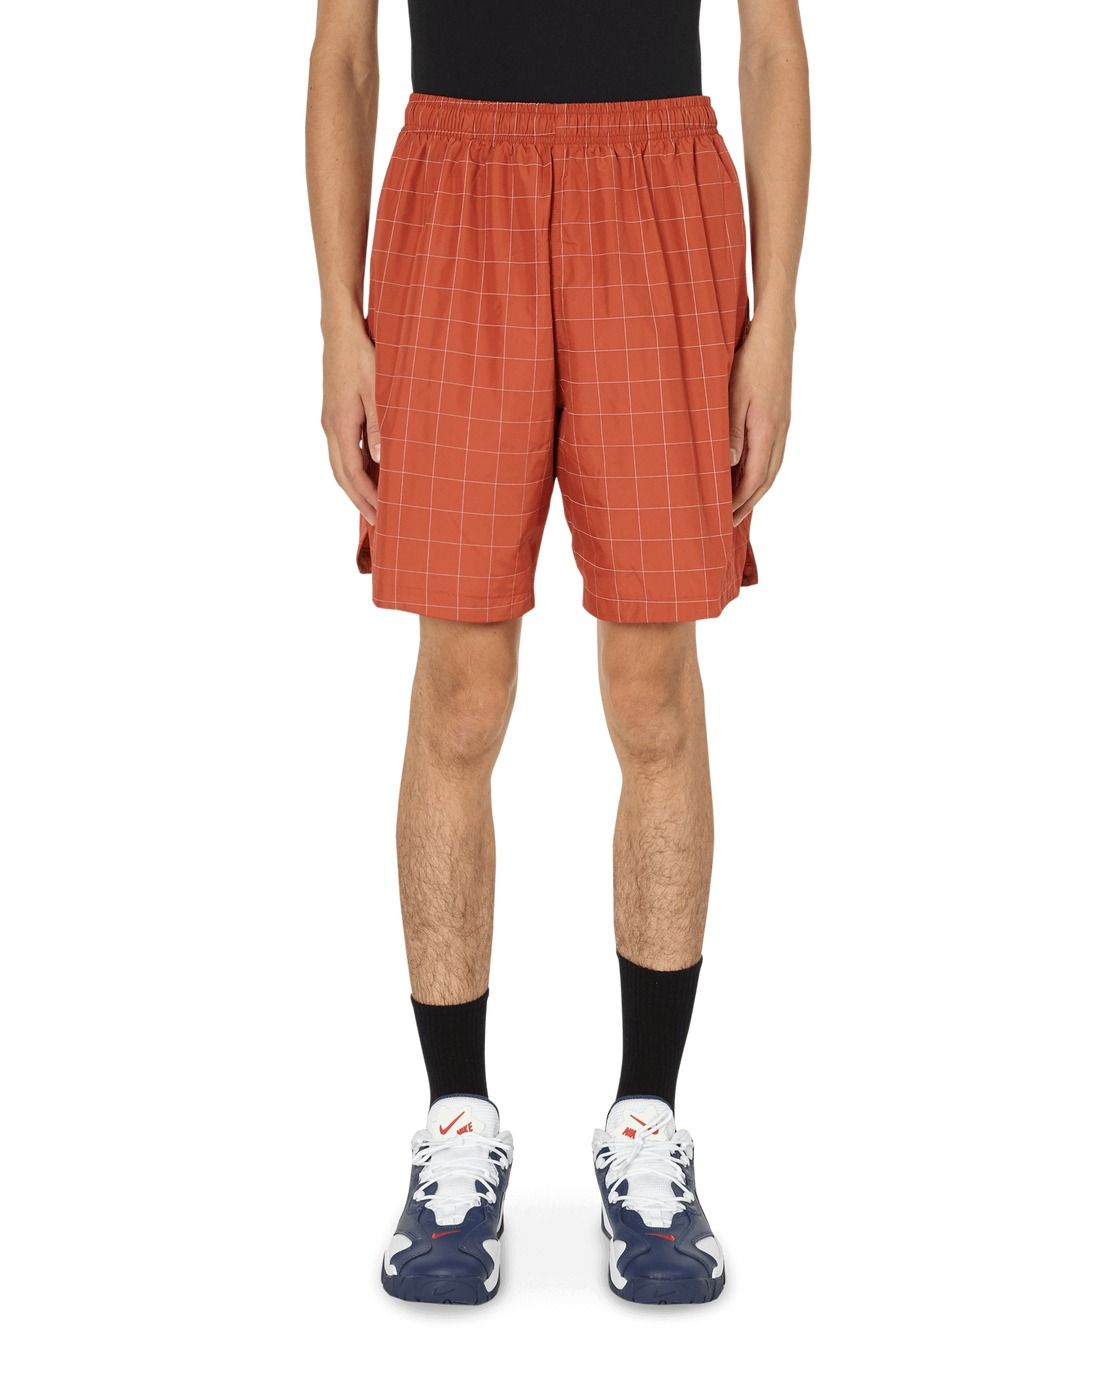 Nike Special Project Nrg Flash Shorts Red